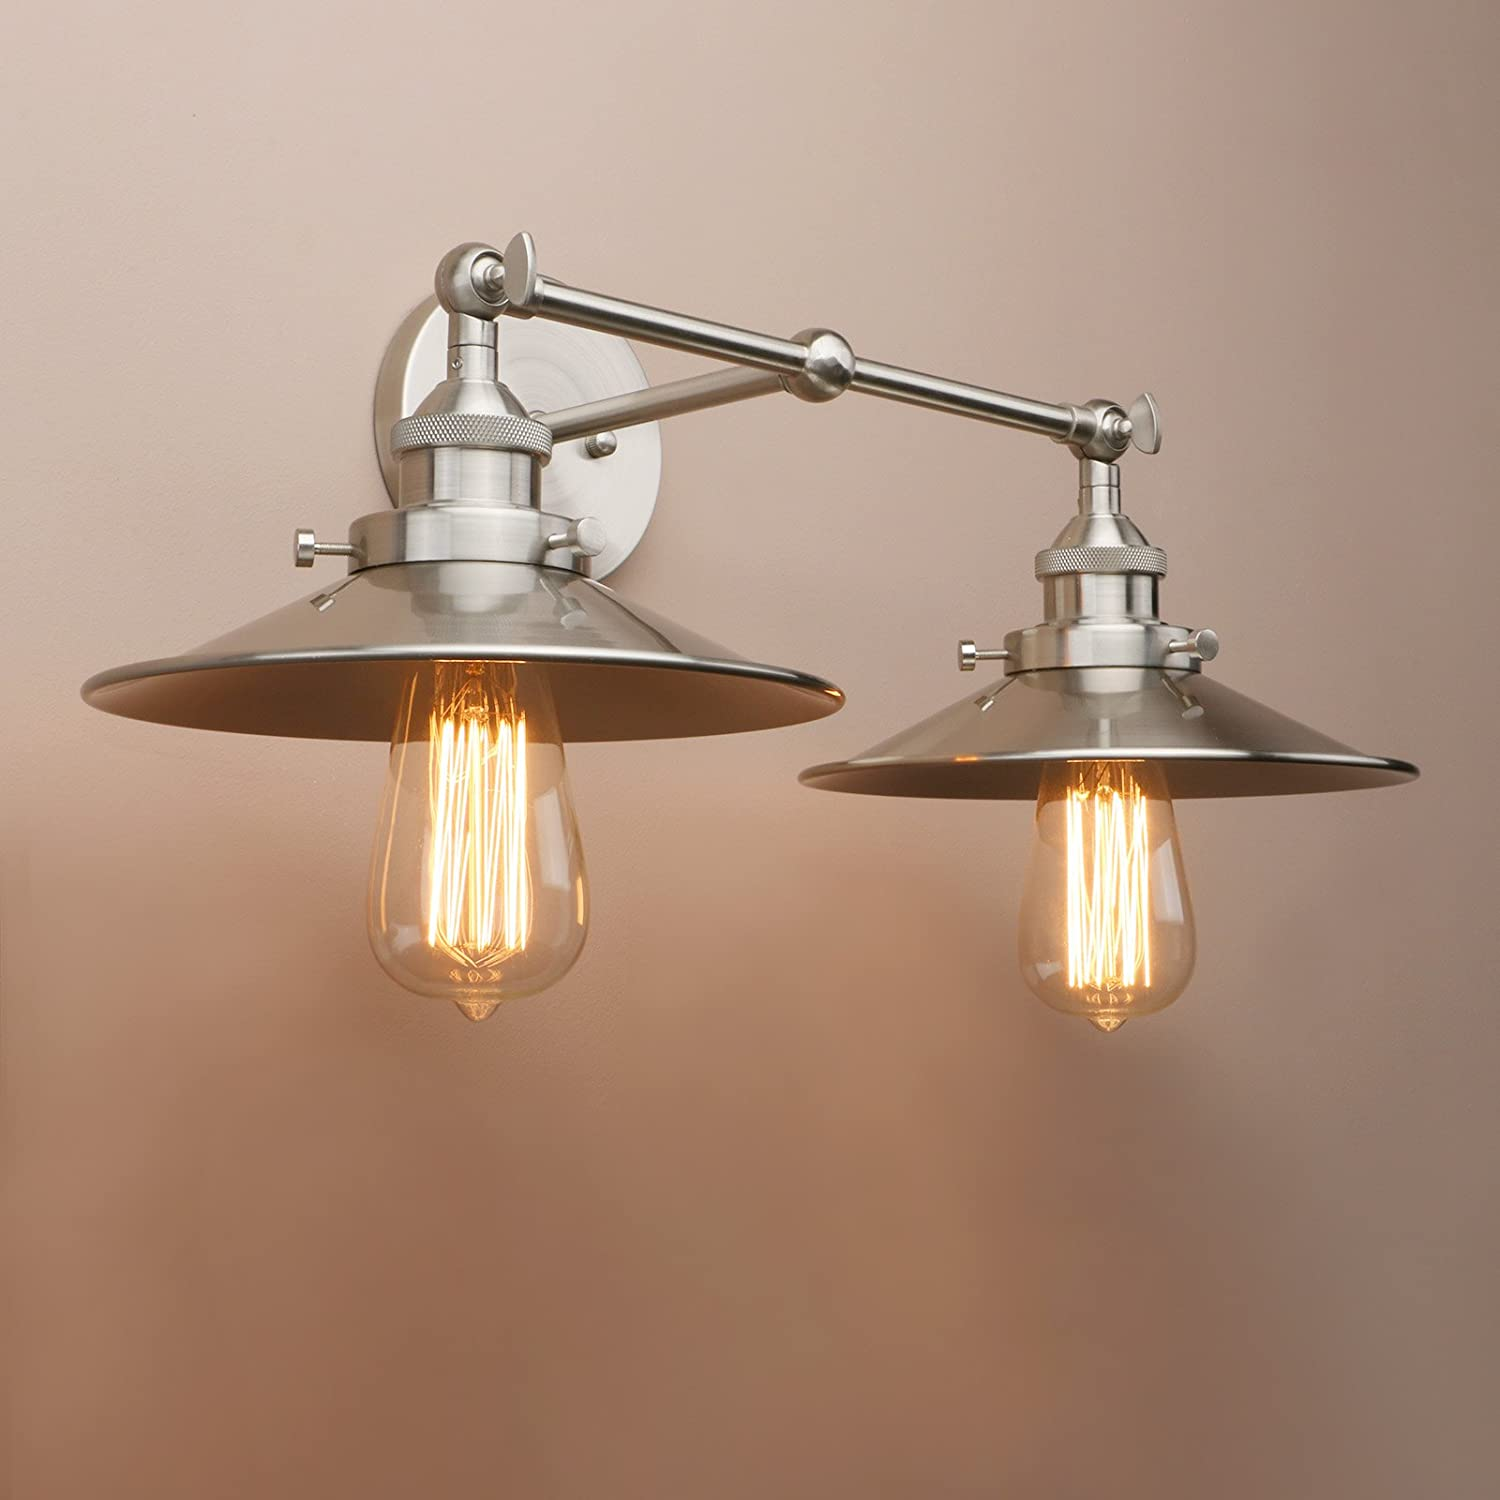 Pathson Industrial Wall Sconce With Vintage Style 2 Light Bathroom